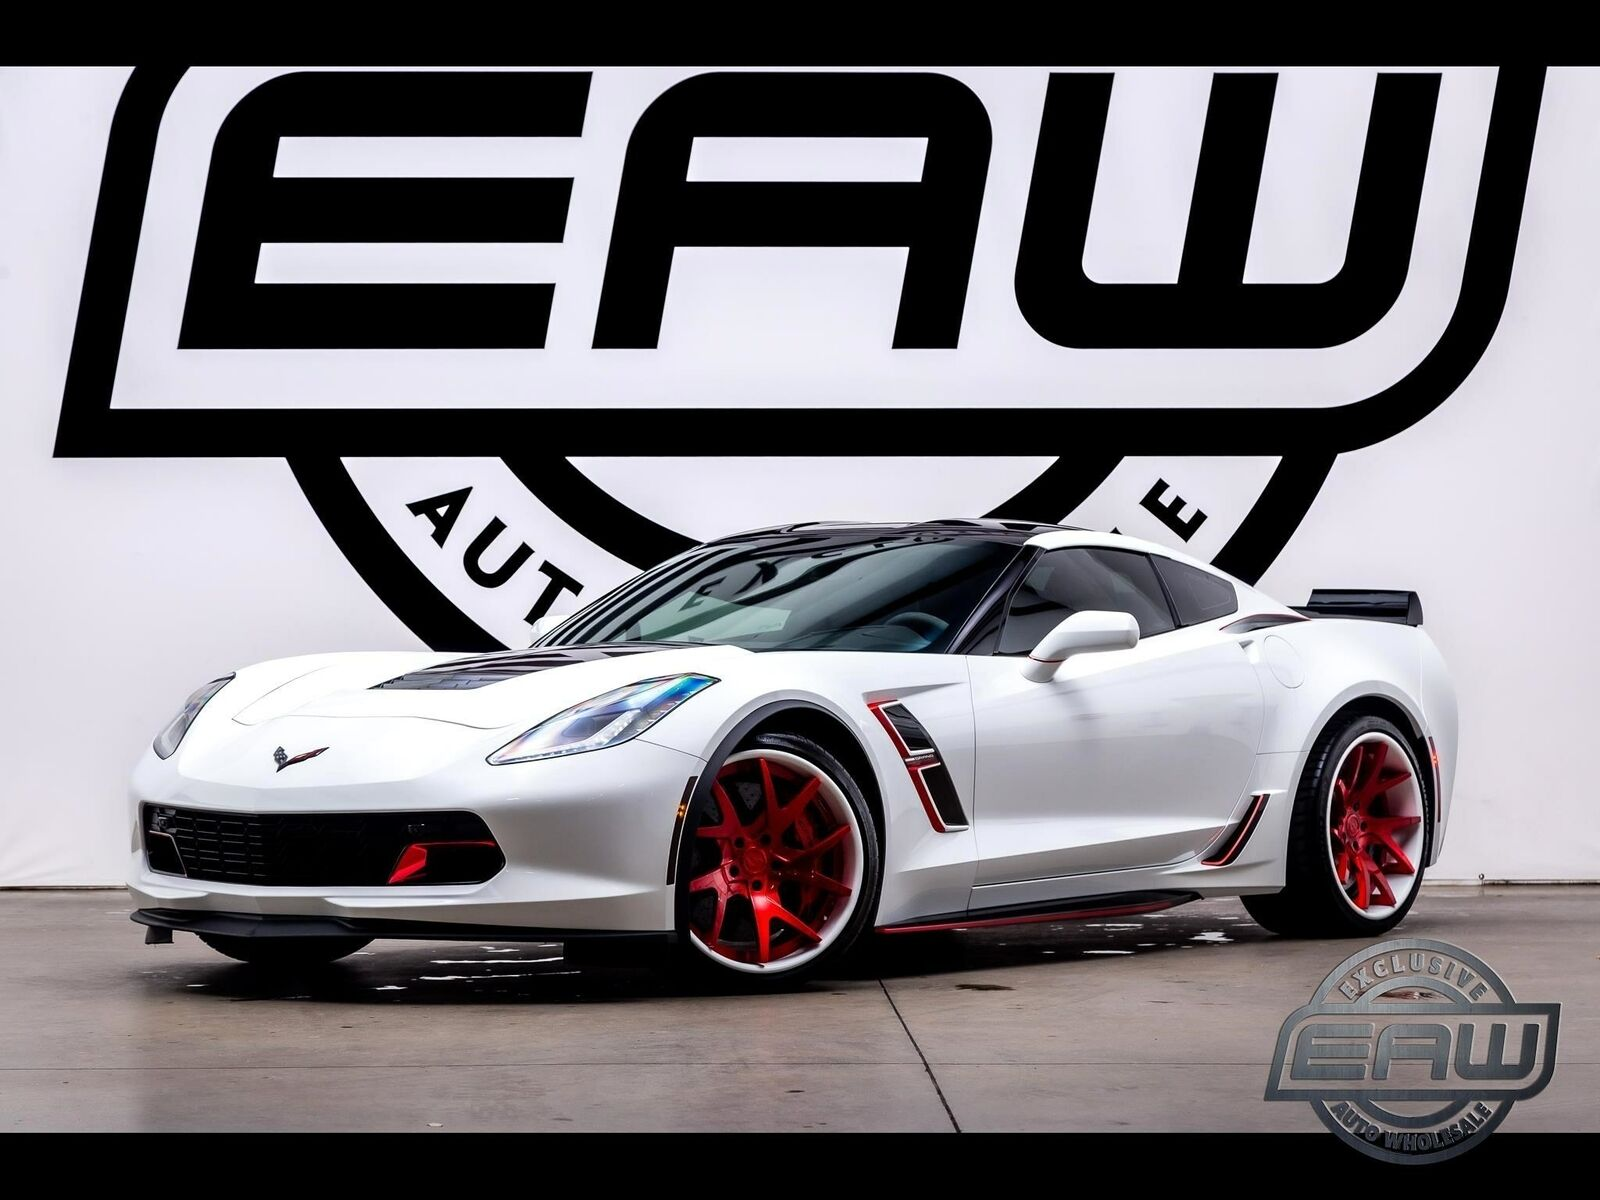 2017 White Chevrolet Corvette Grand Sport 3LT | C7 Corvette Photo 1